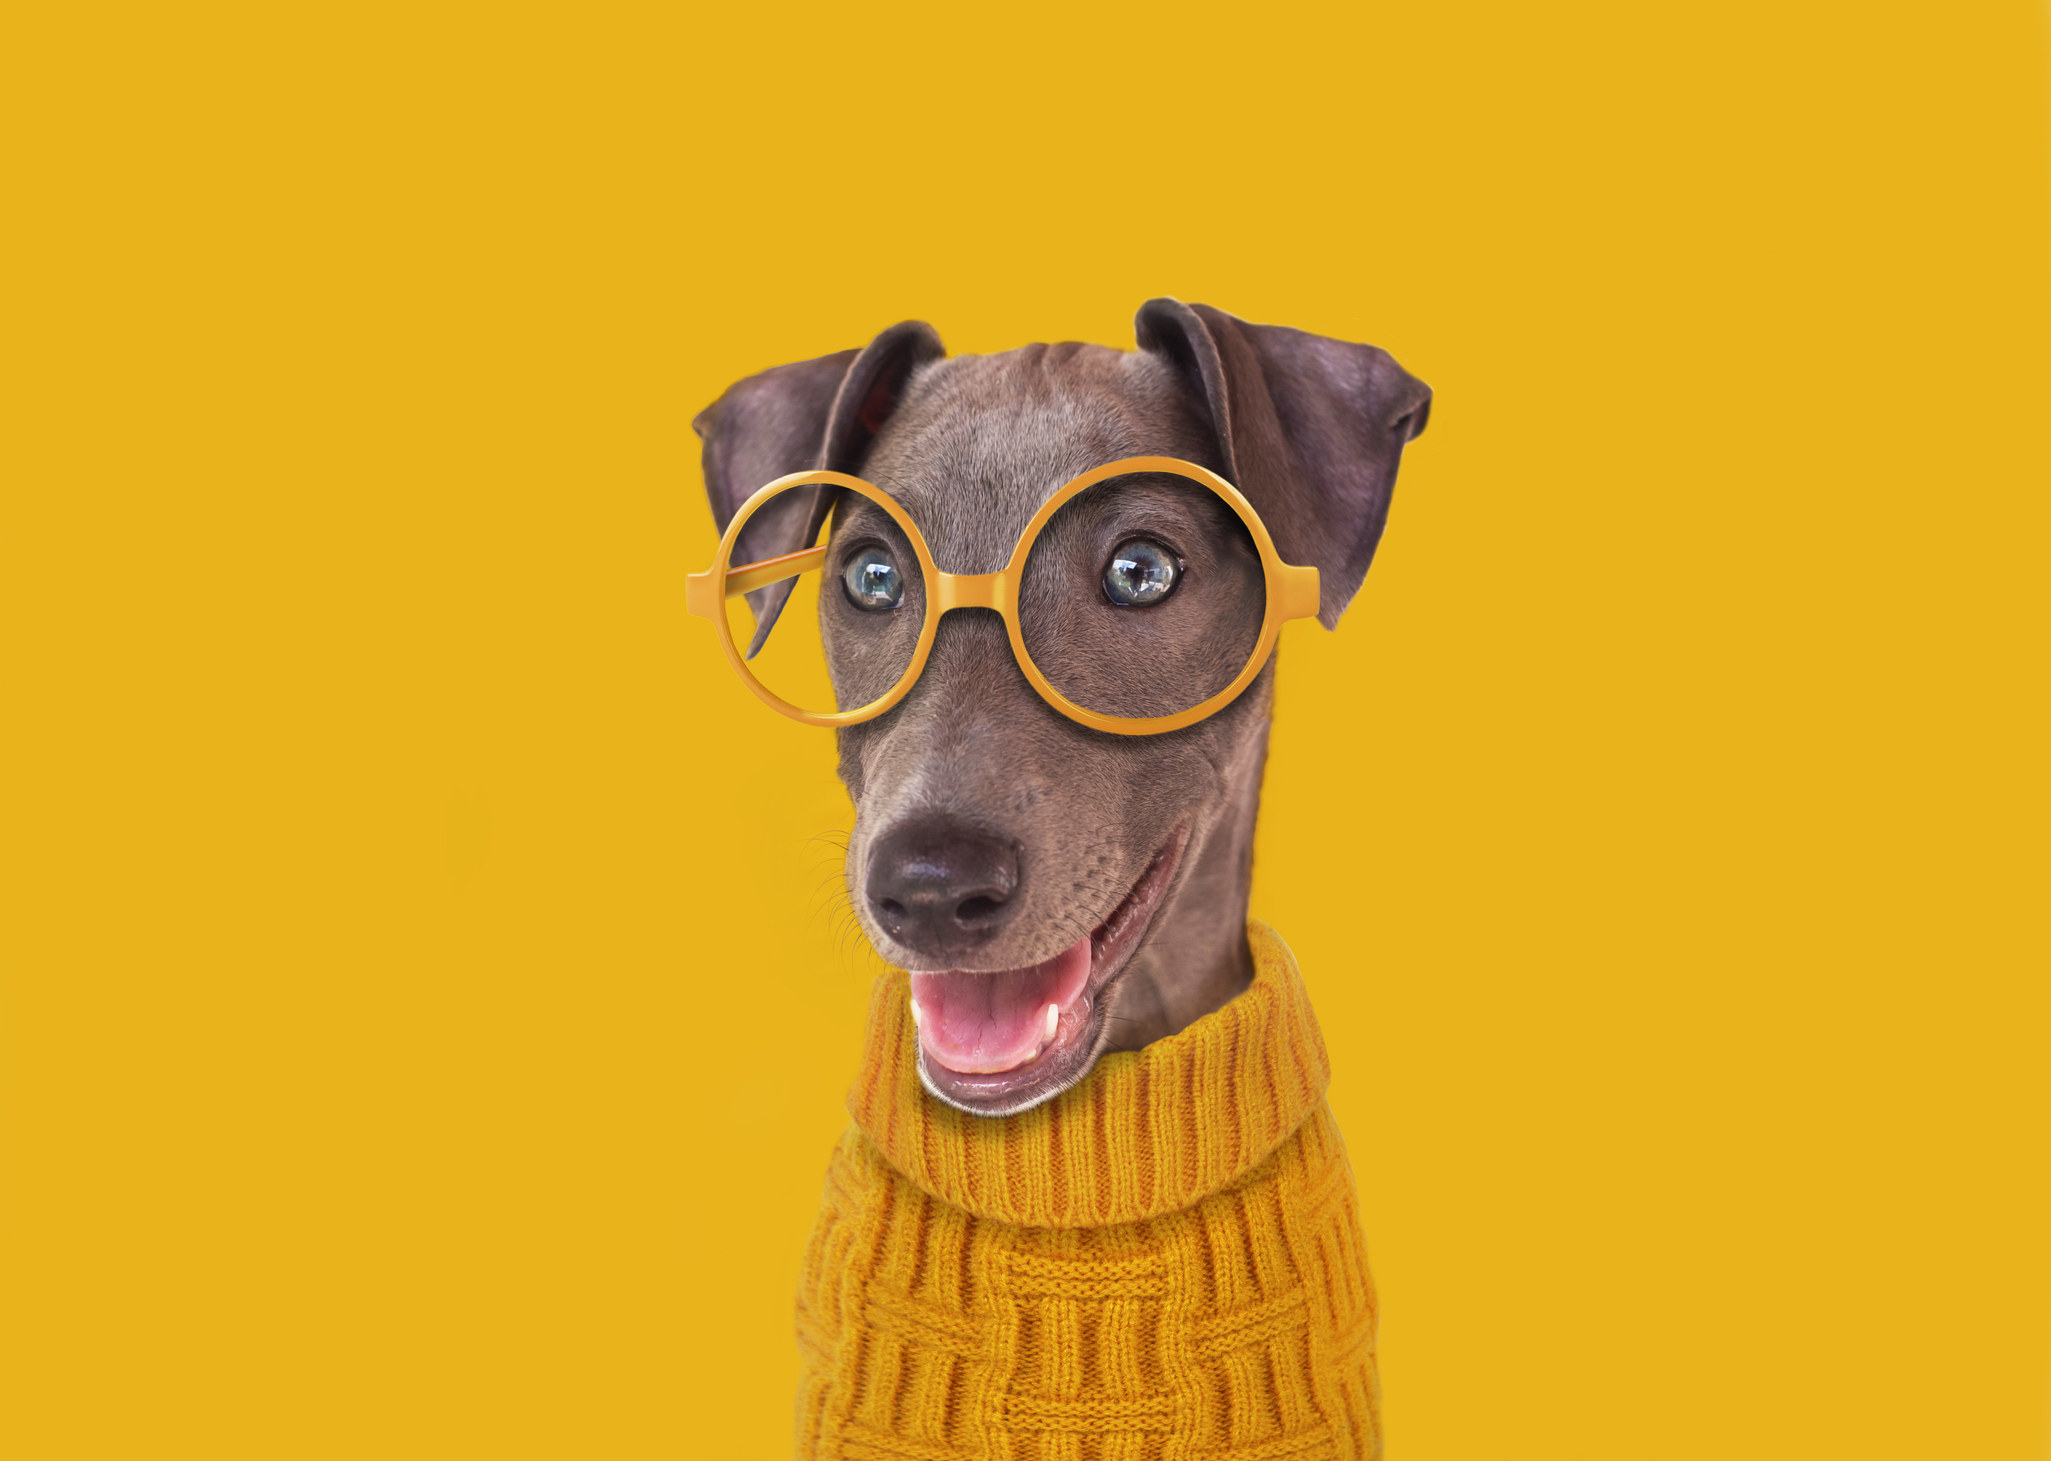 A dog with short fur, a thin face, and floppy ears wearing big, round glasses and a turtleneck sweater